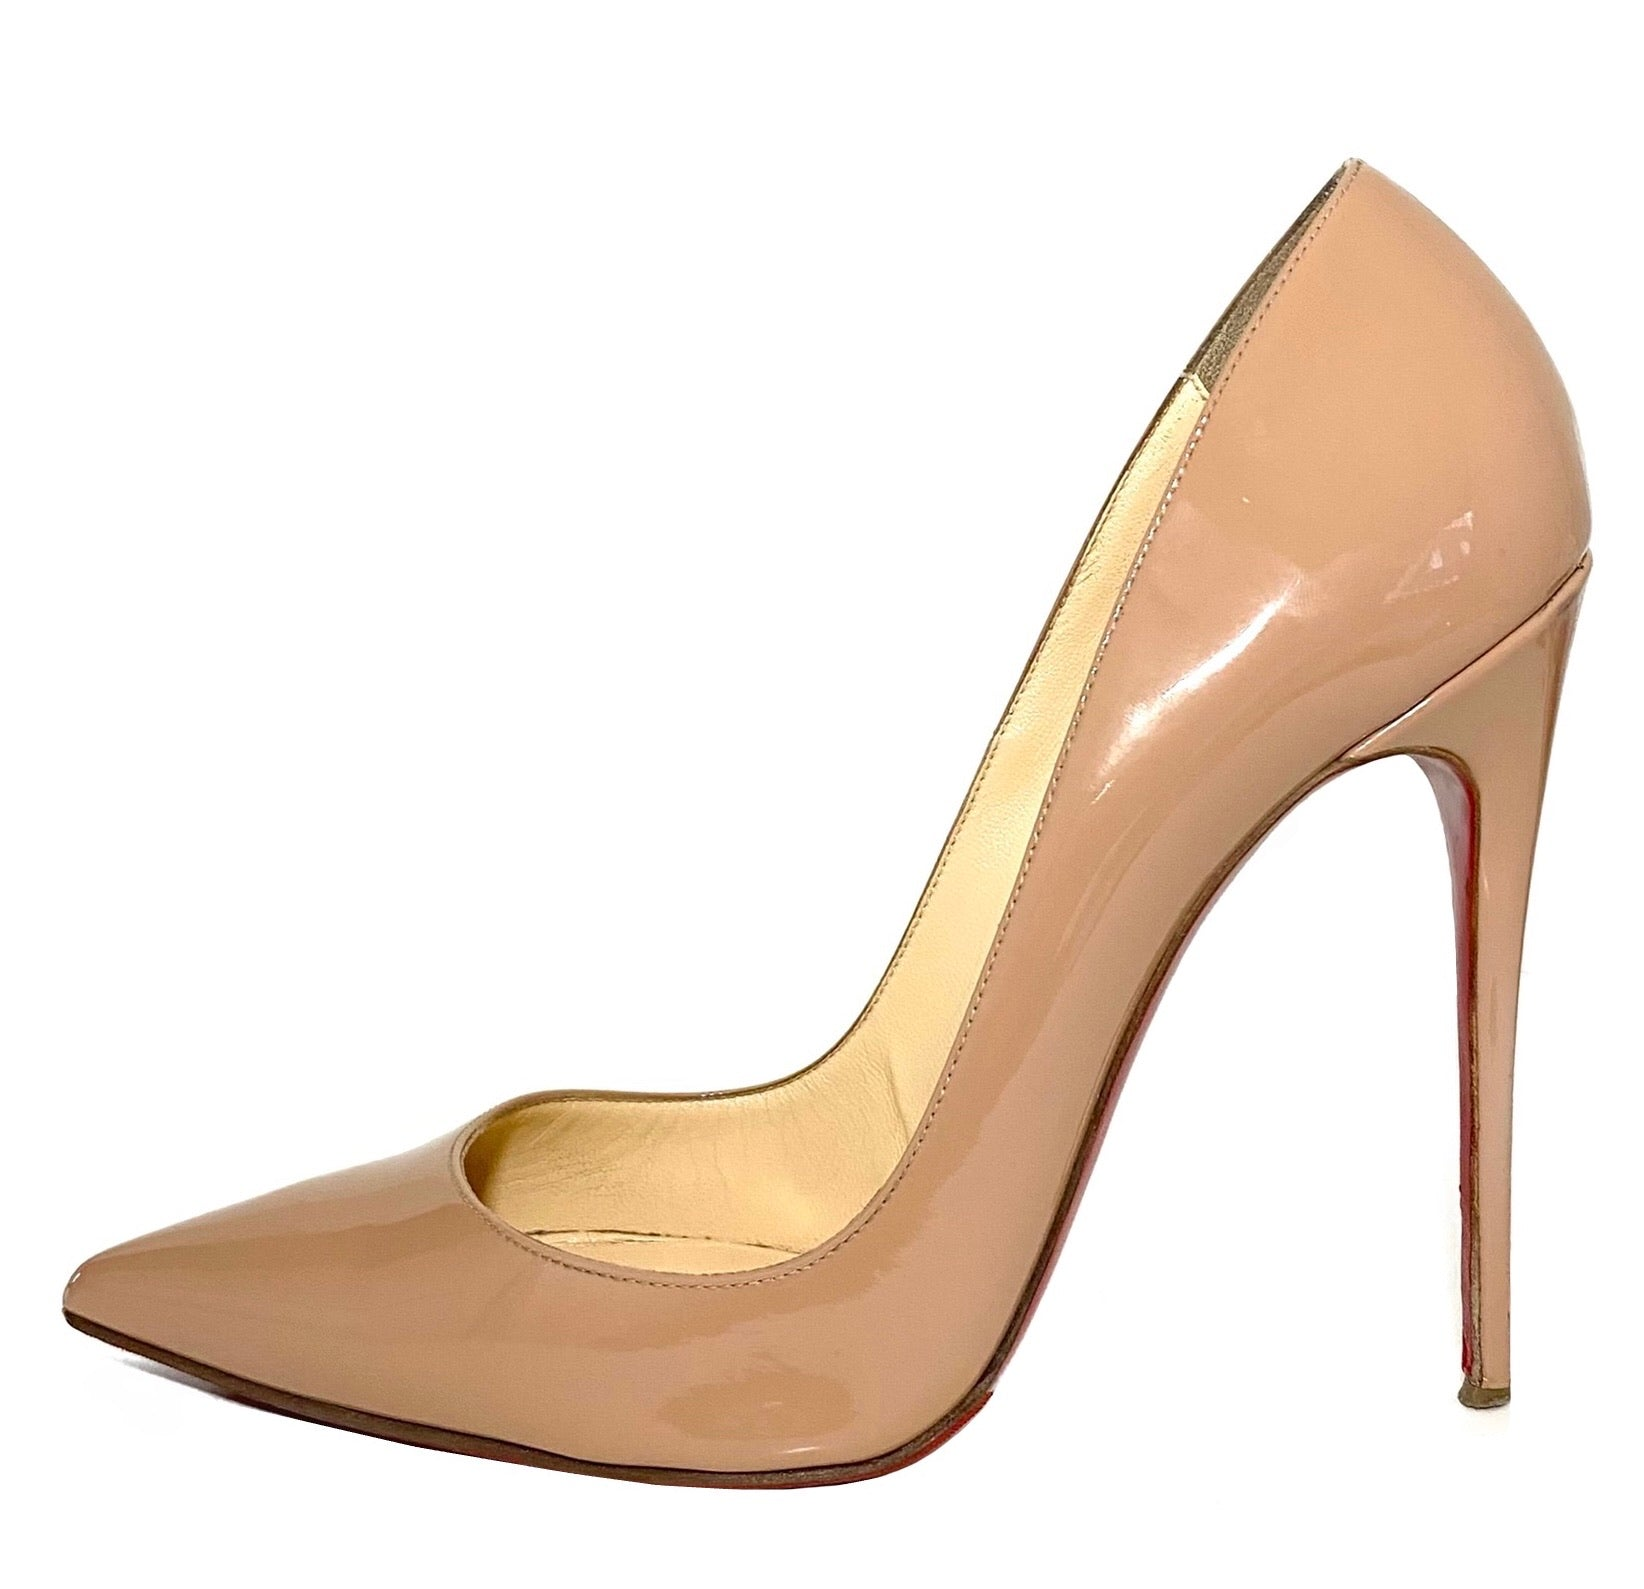 Patent So Kate 120 Pumps 39.5